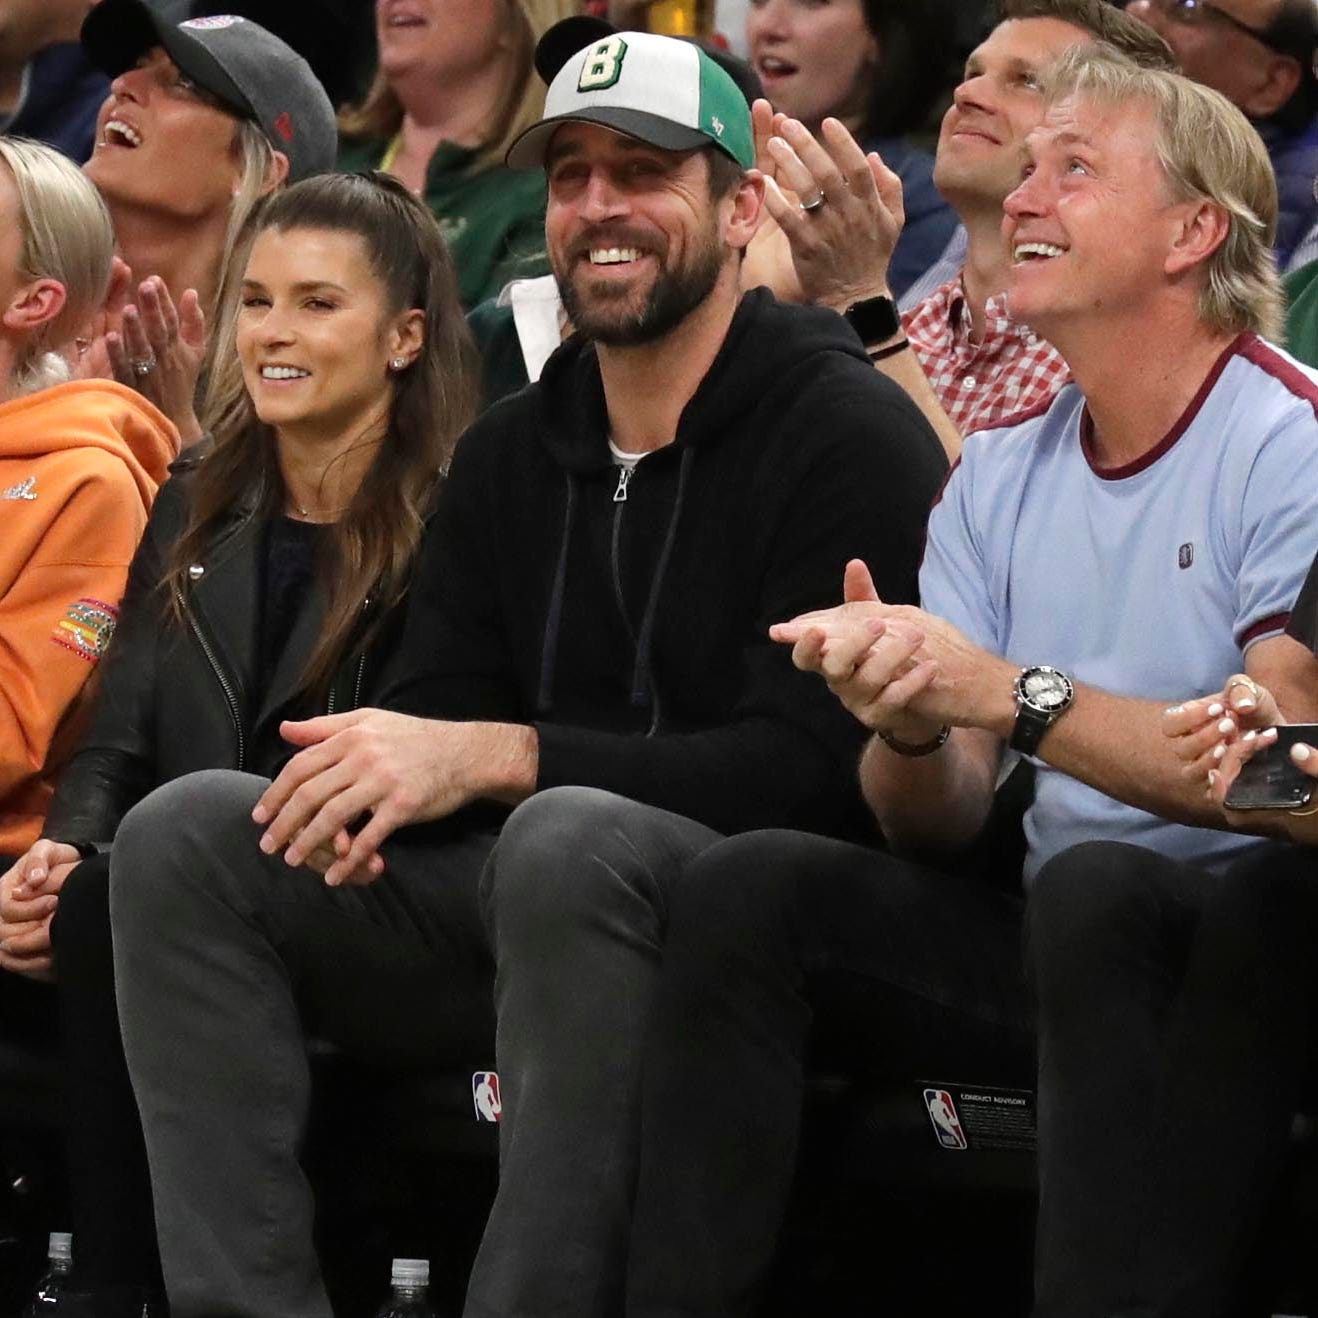 Twitter had a laugh when a fan presented Danica Patrick a drink with Aaron Rodgers sitting in the next seat